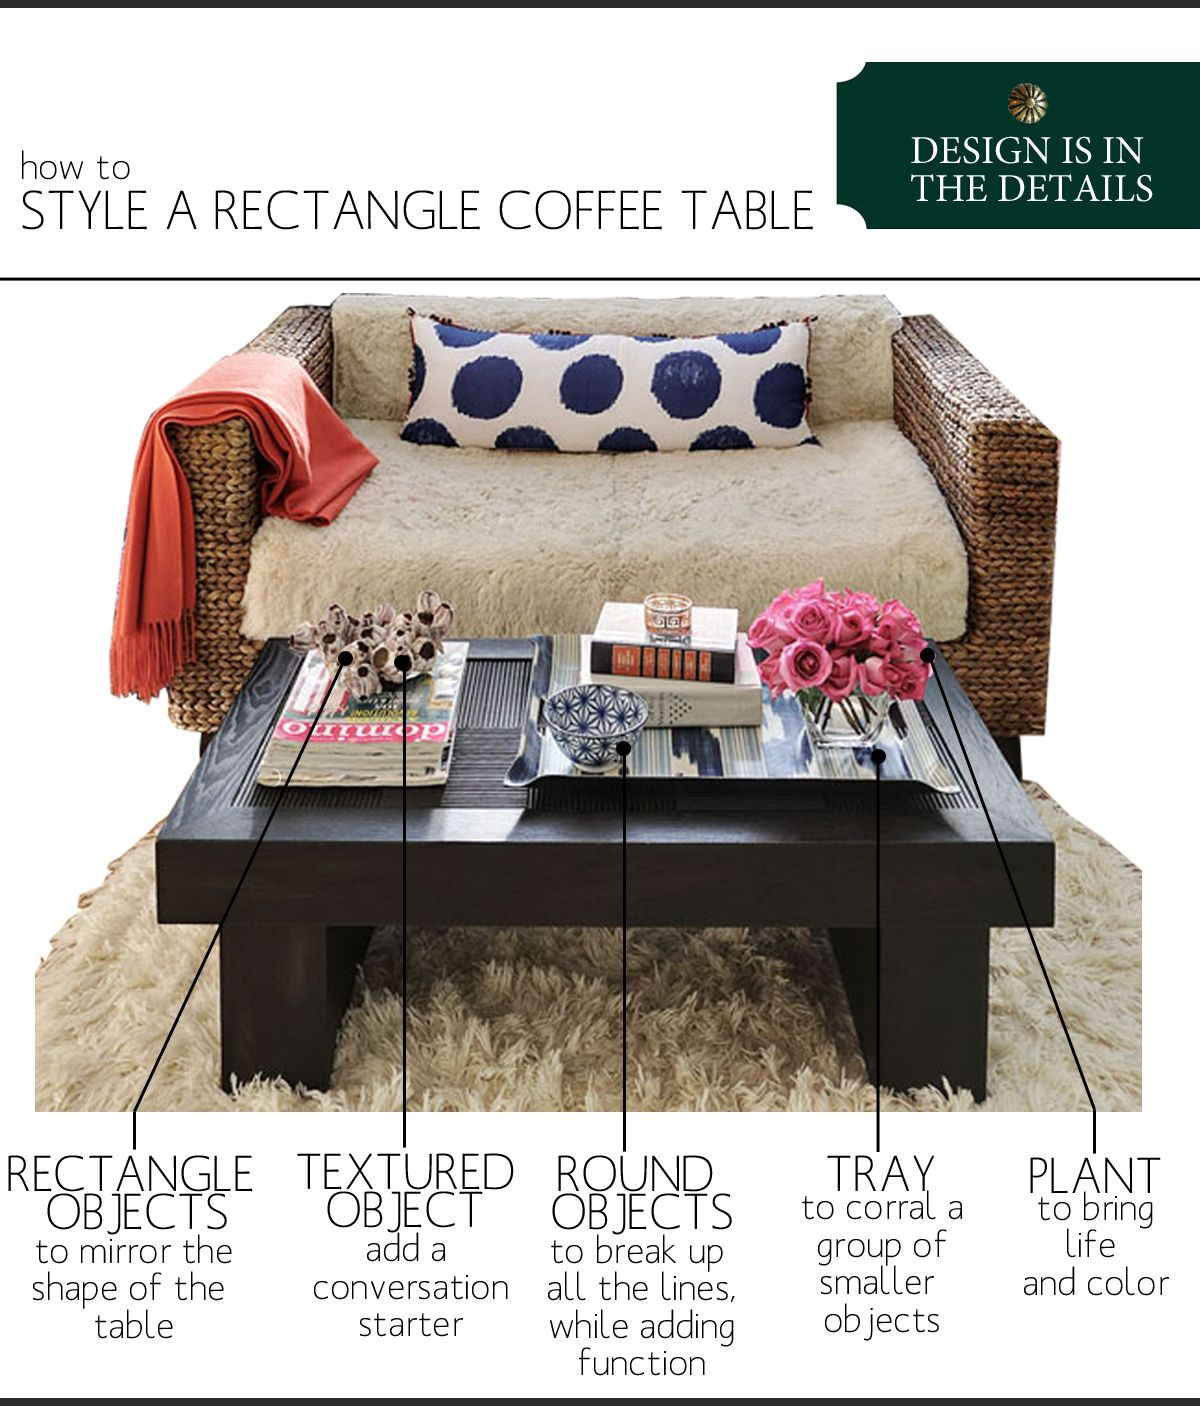 Posts About How To Style A Rectangle Coffee Table On The Anatomy Of Design Coffee Table Coffee Table Rectangle Coffe Table Decor [ 1406 x 1200 Pixel ]